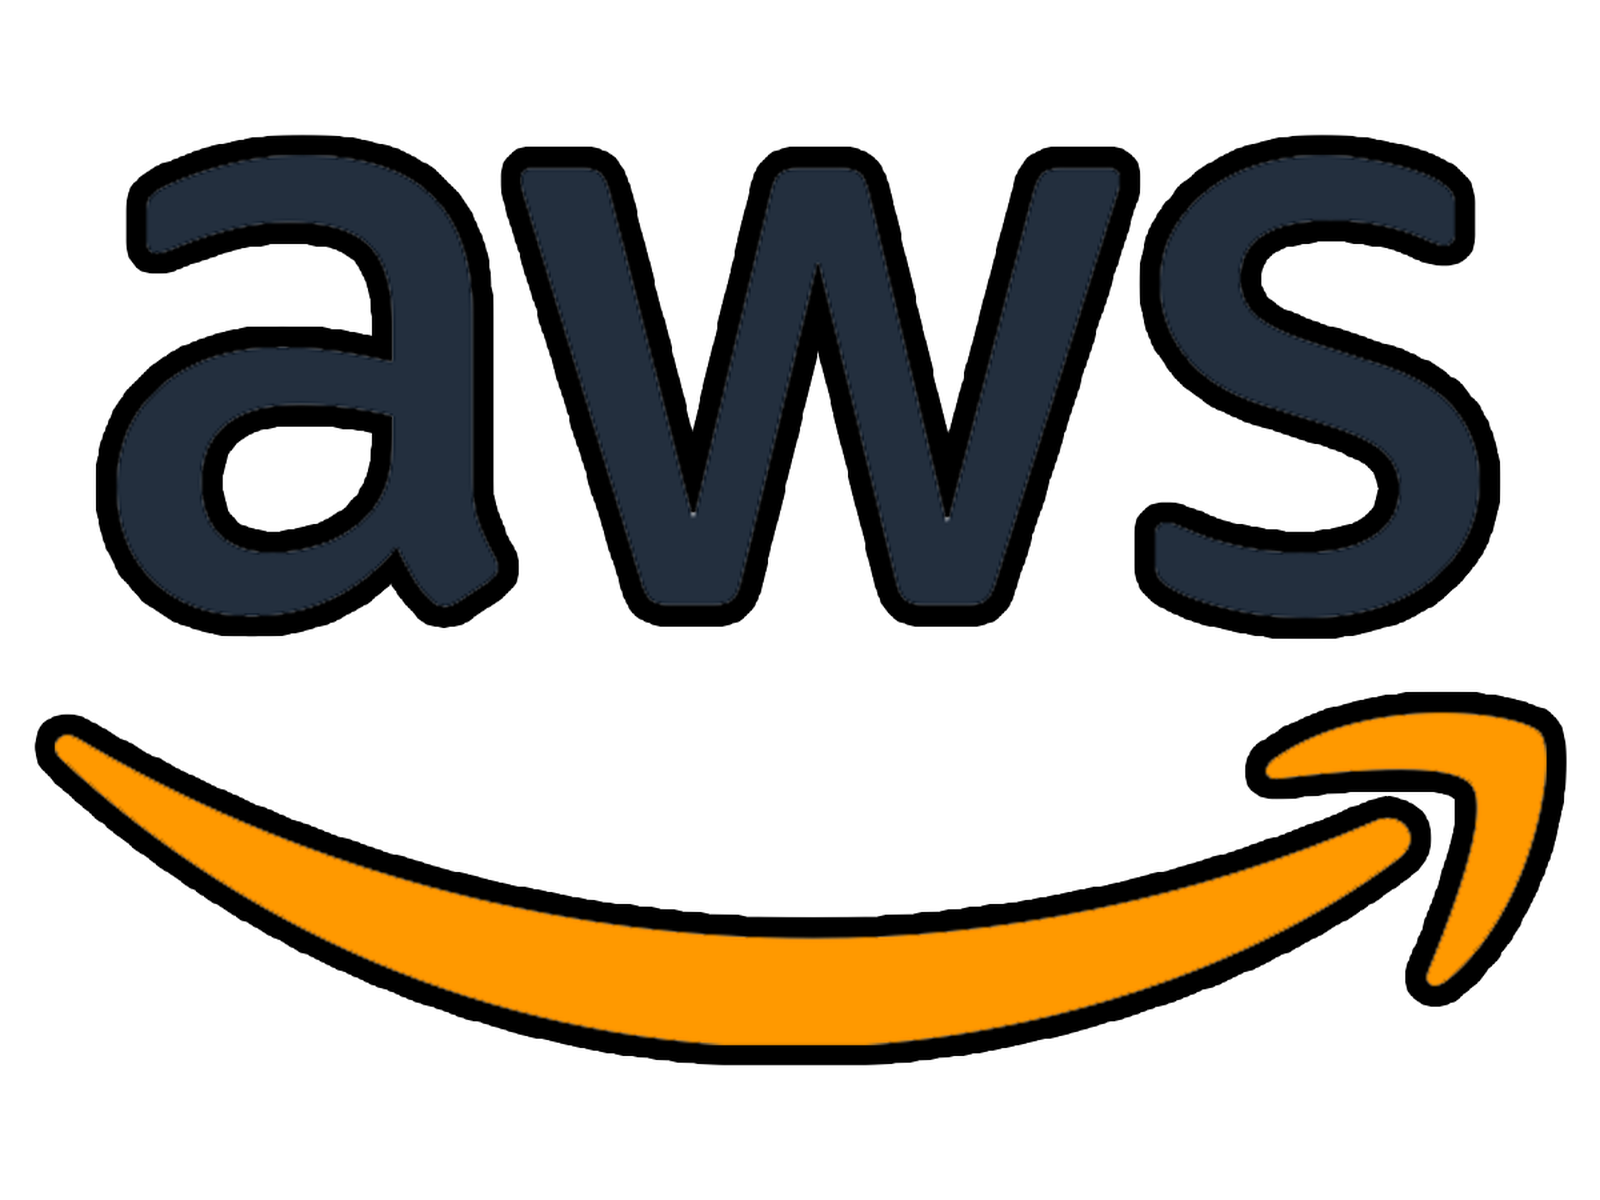 Aws logo png. Learn join browse content